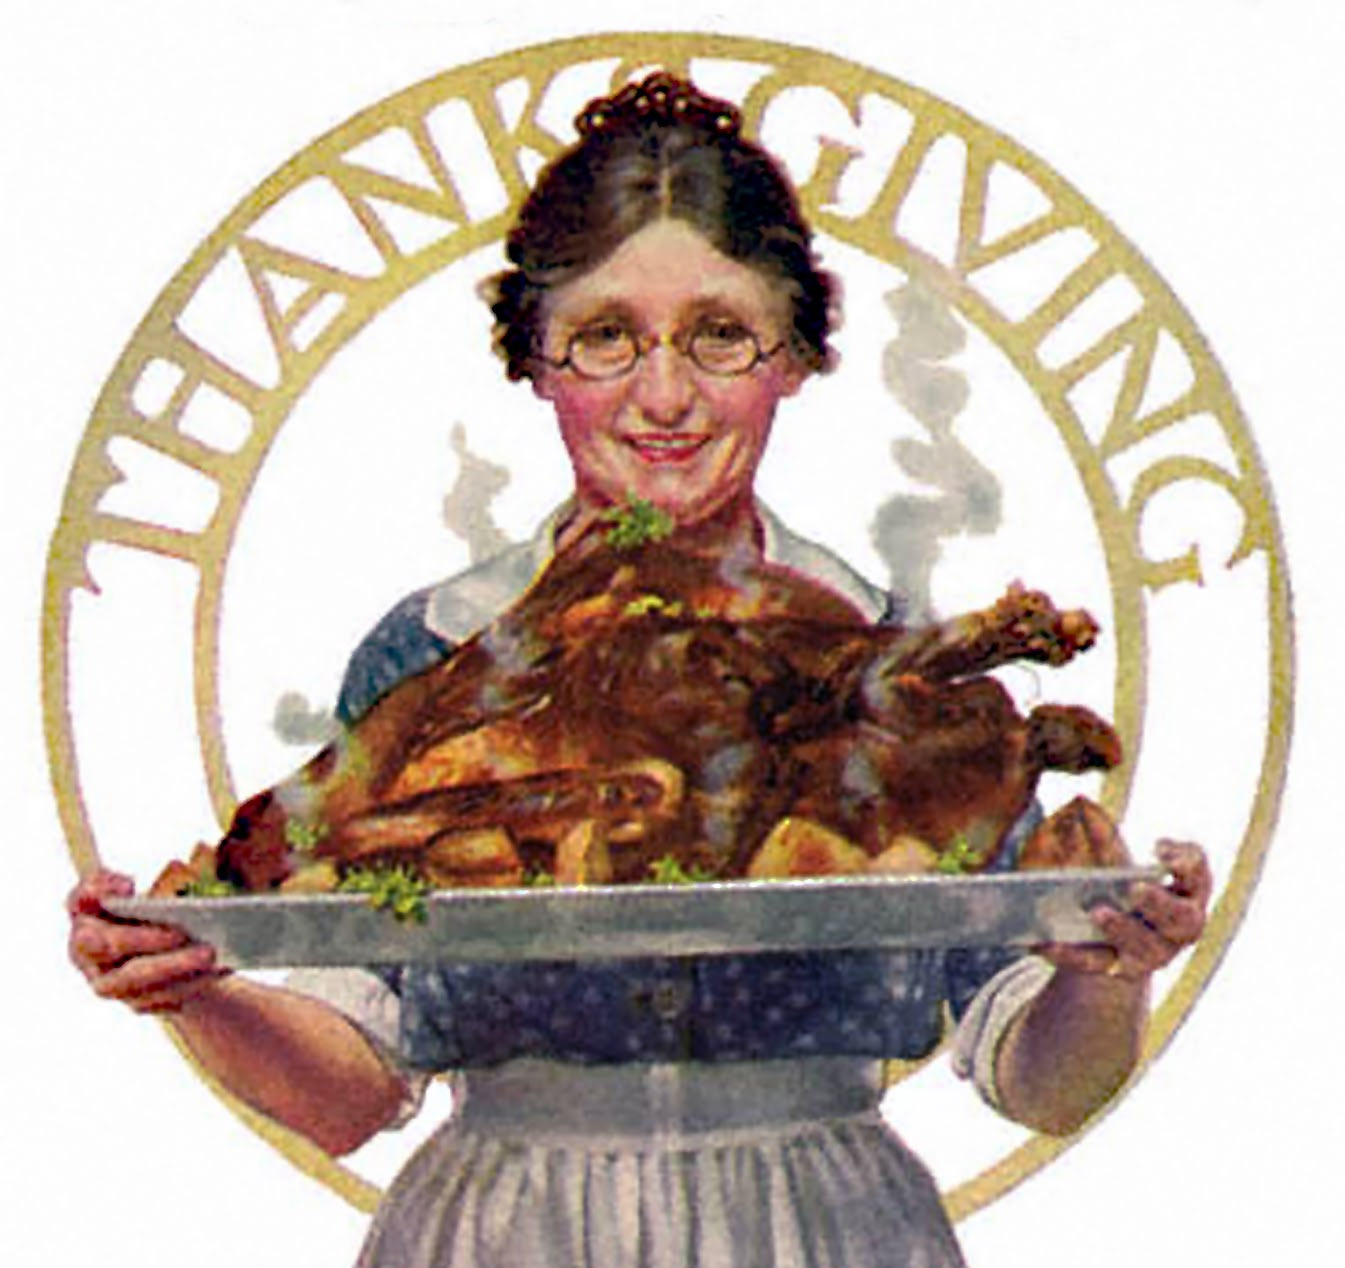 Norman Rockwell Depicted an Idealized Version of American Thanksgiving